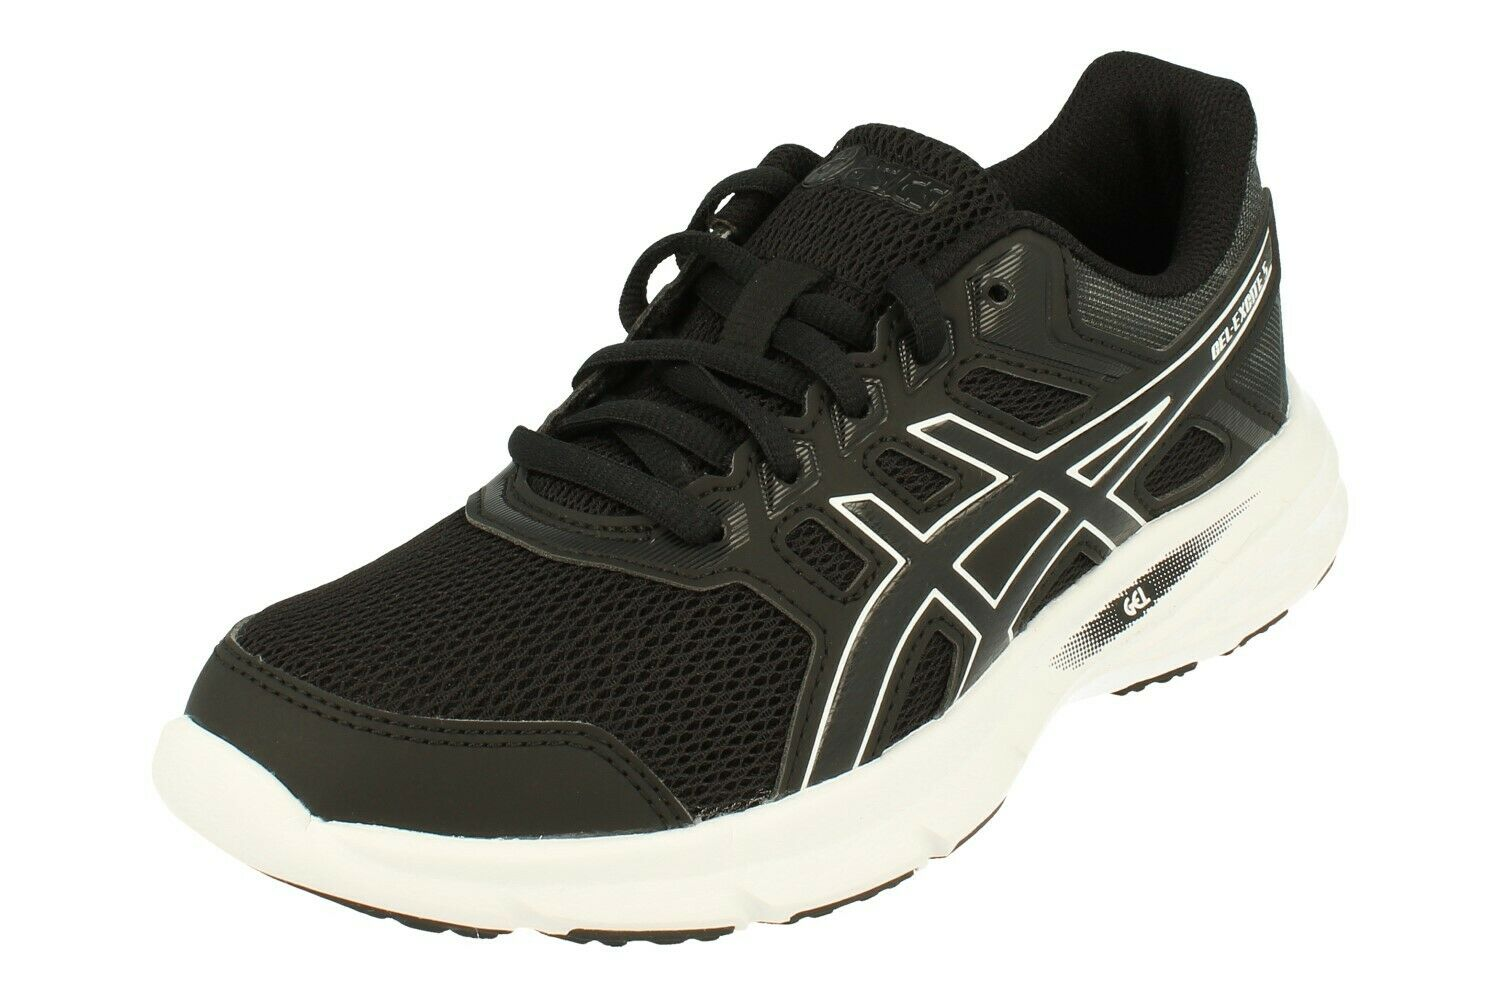 Asics Gel-Excite 5 Womens Running Trainers T7F8N Sneakers shoes 9090